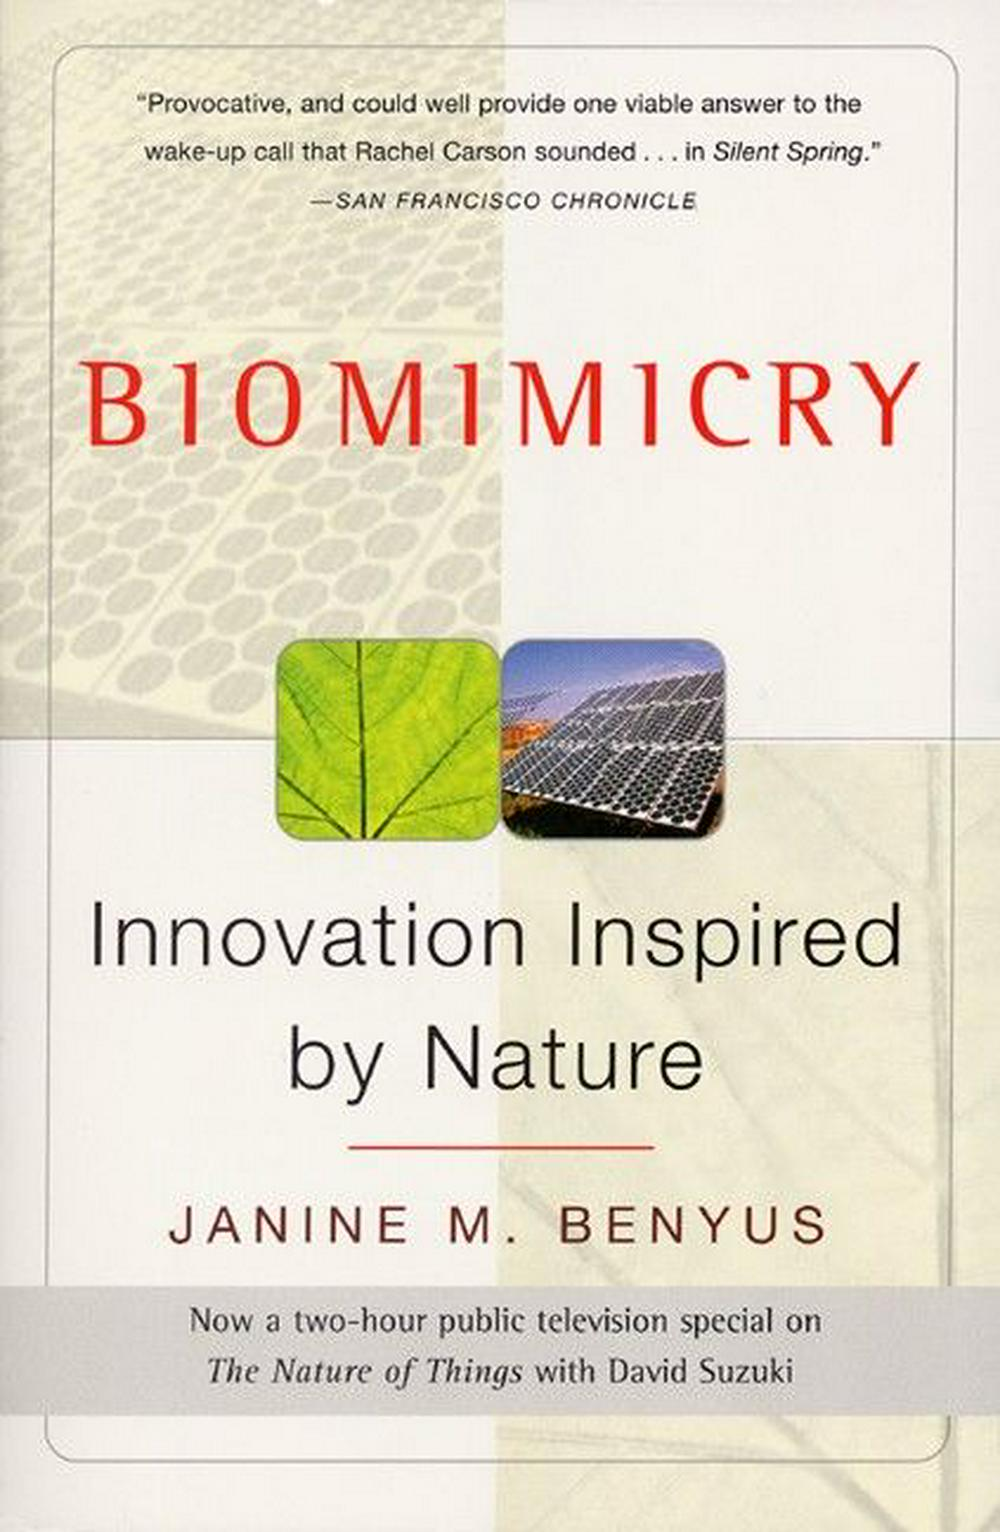 Biomimicry by Janine M. Benyus, ISBN: 9780060533229